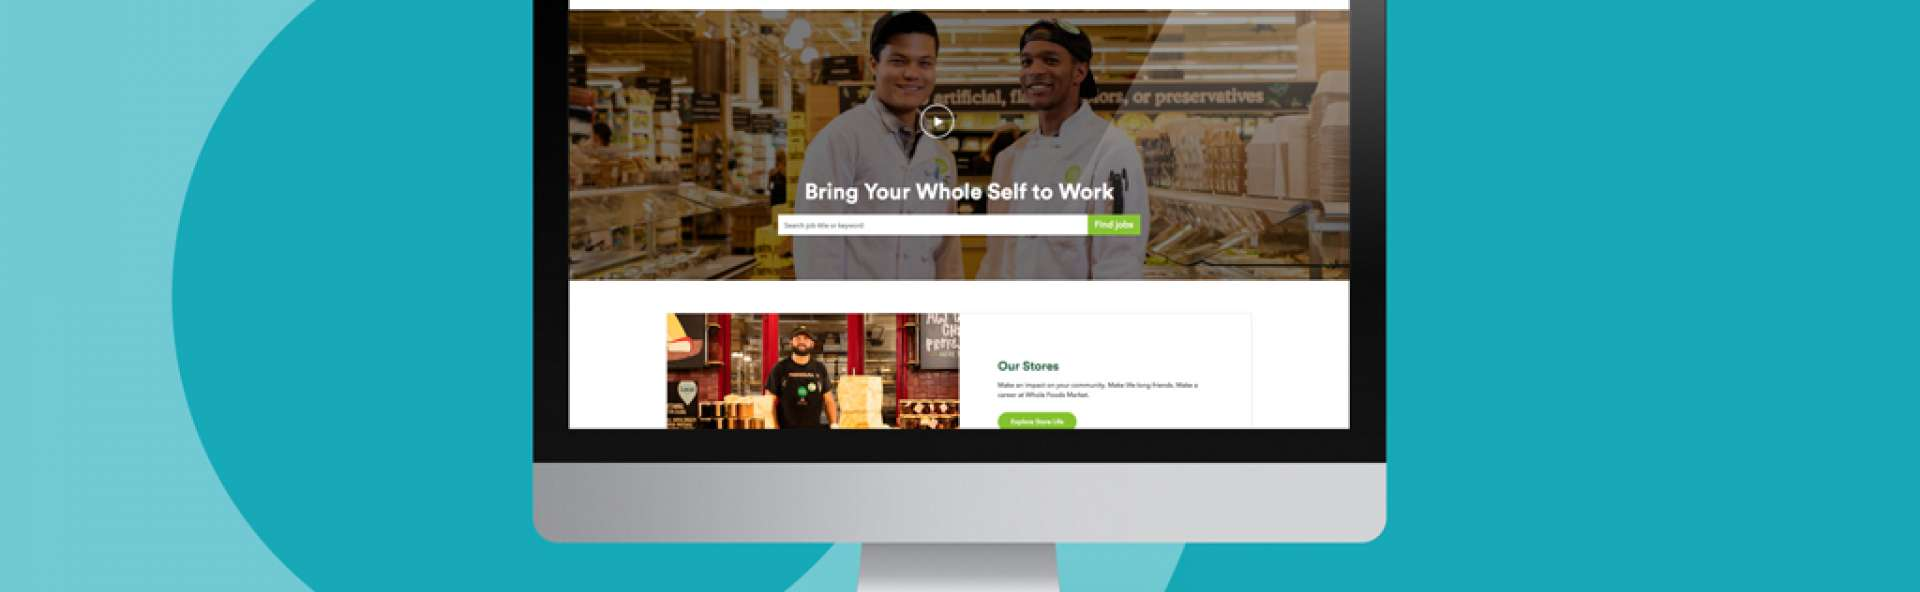 Check Out Whole Foods's Career Site Powered by Phenom People